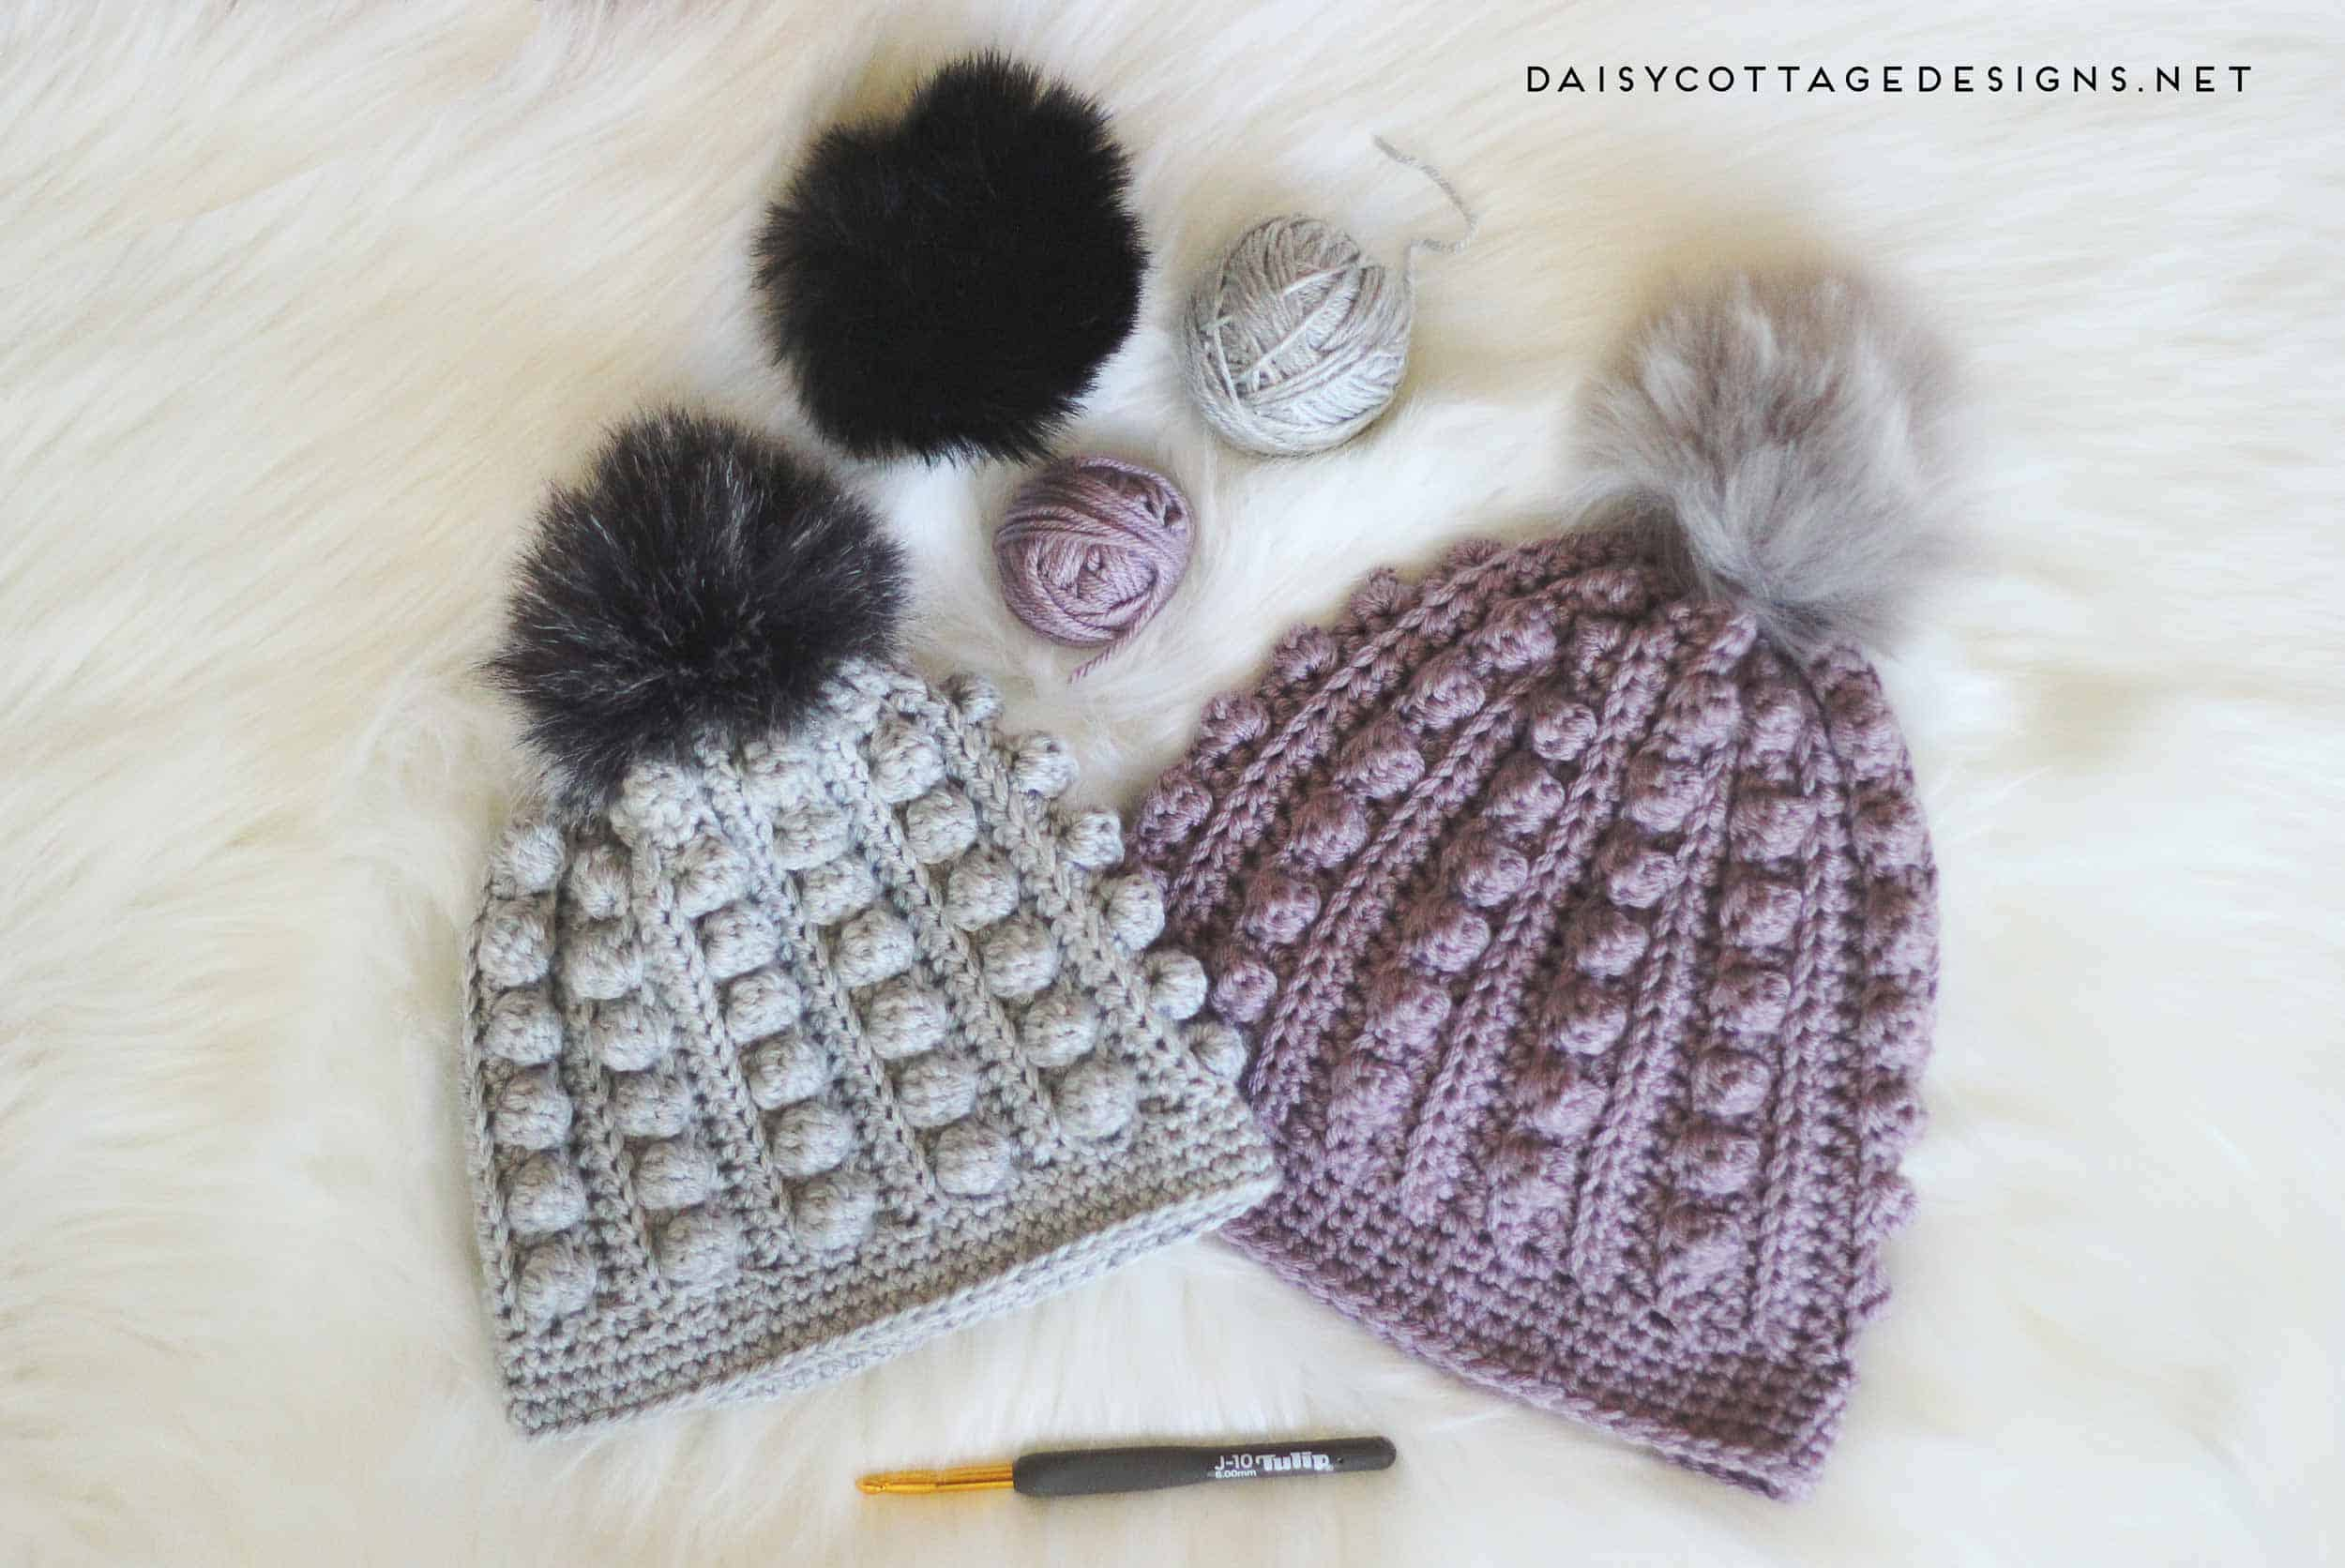 Bobble beanie crochet pattern daisy cottage designs use this free bobble beanie crochet pattern to create an adorable crochet hat for anyone on bankloansurffo Gallery